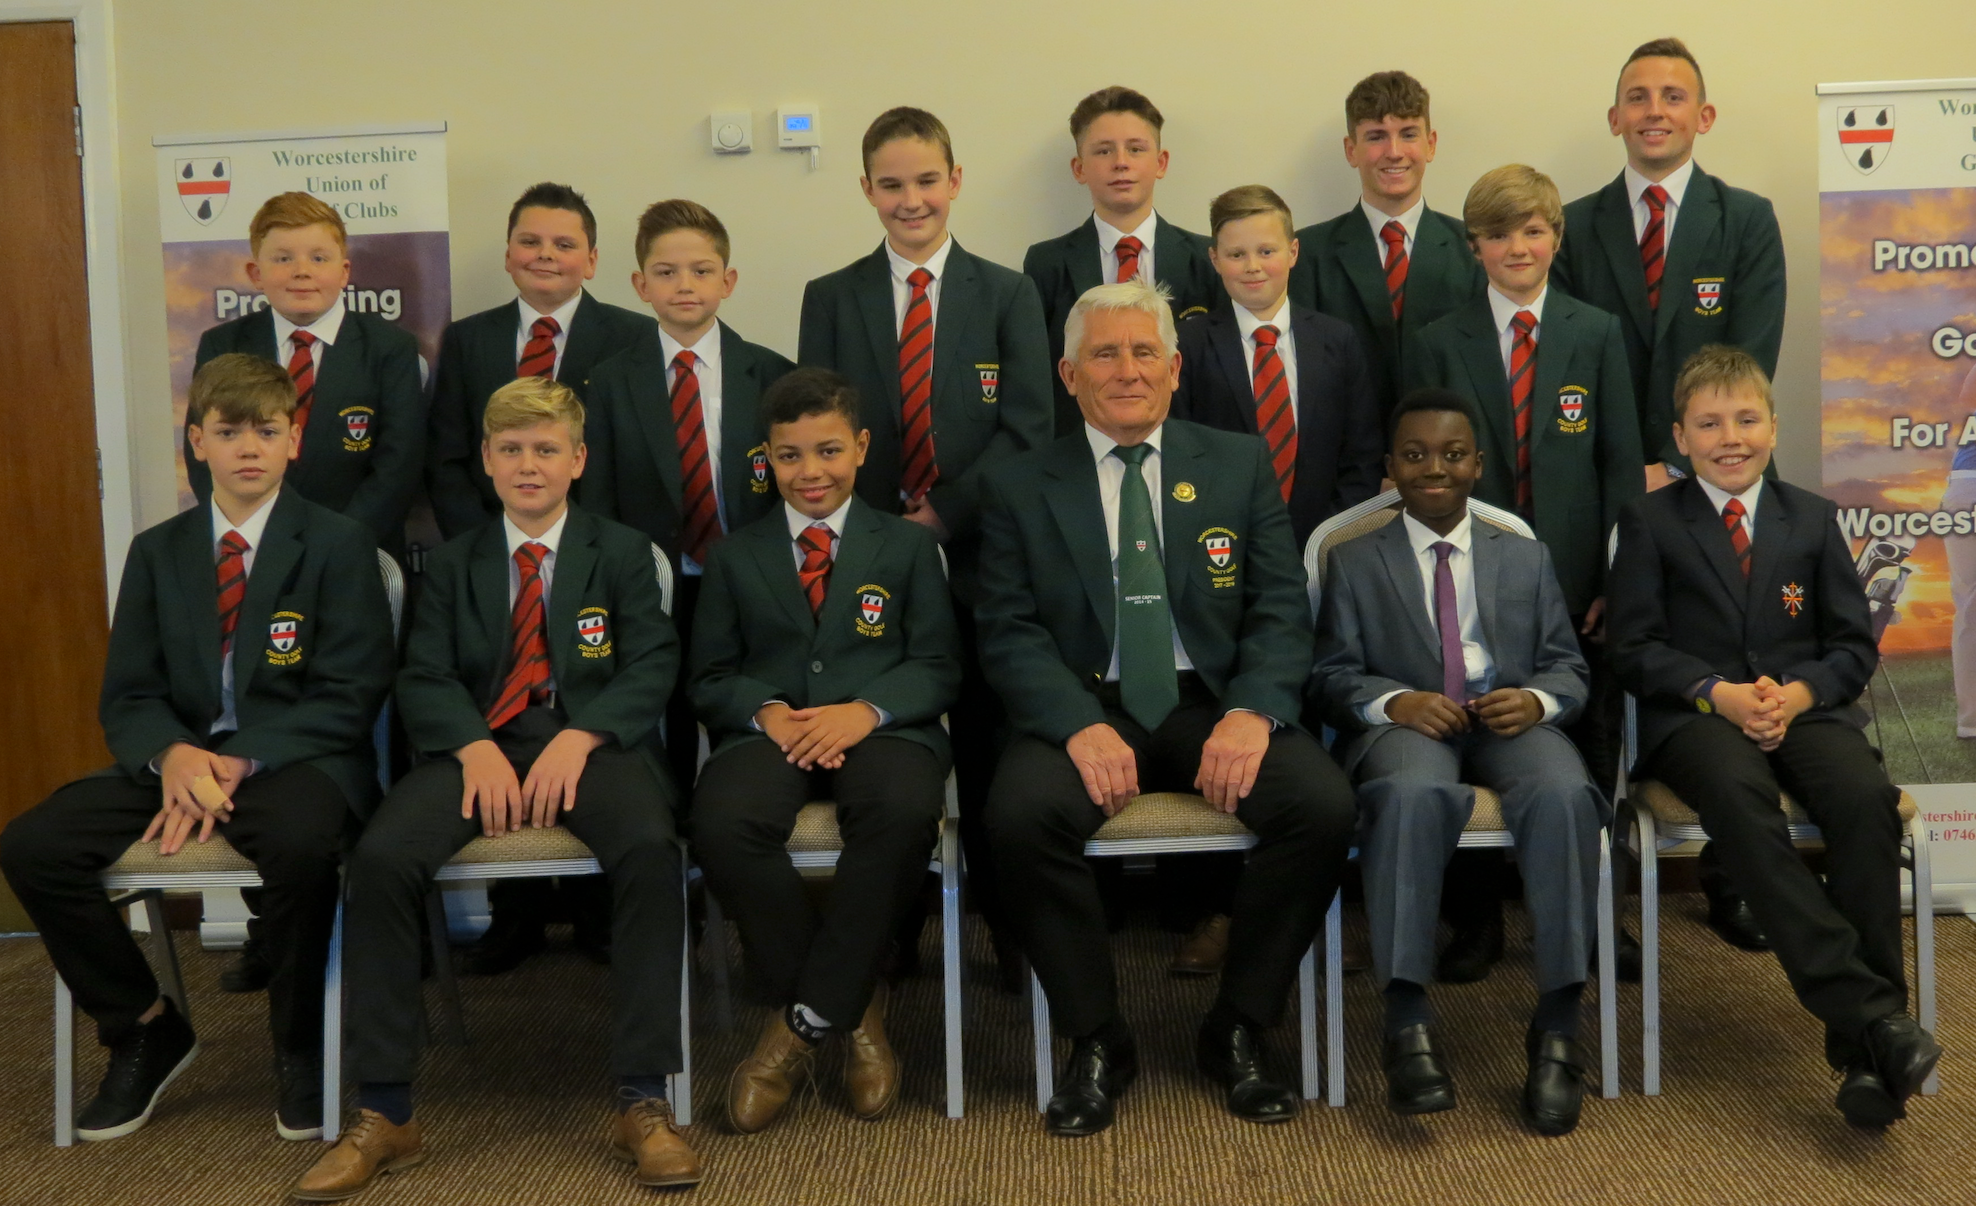 Copy of 2017 Worcestershire U14s County Squad